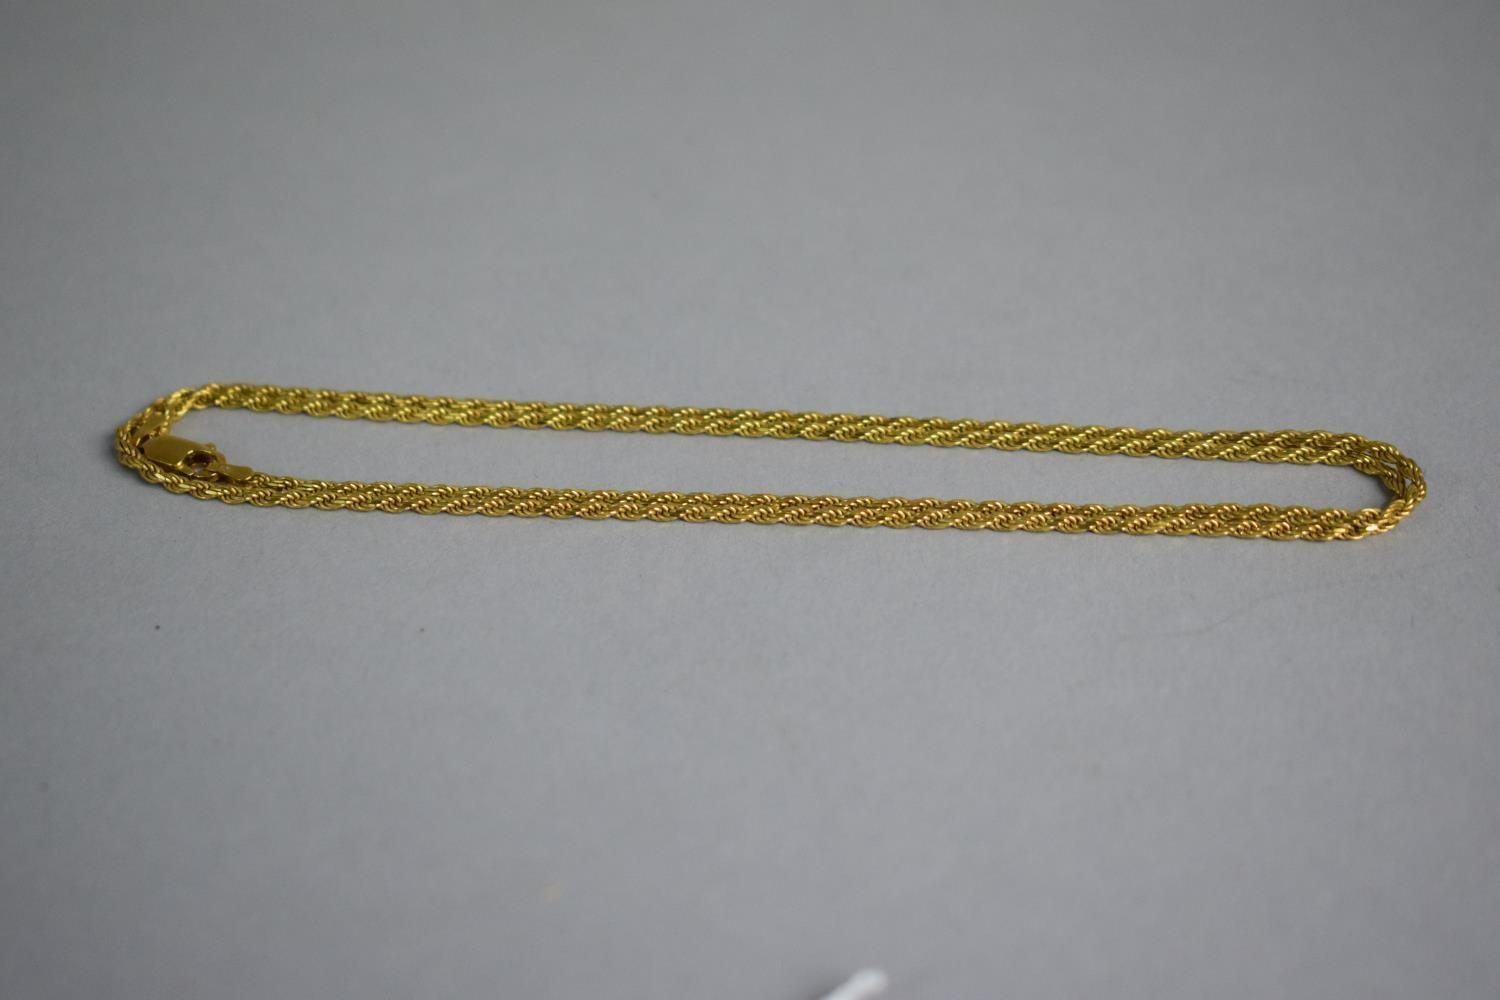 Lot 321 - A 9ct Gold Rope Necklace Chain, 7.4gms